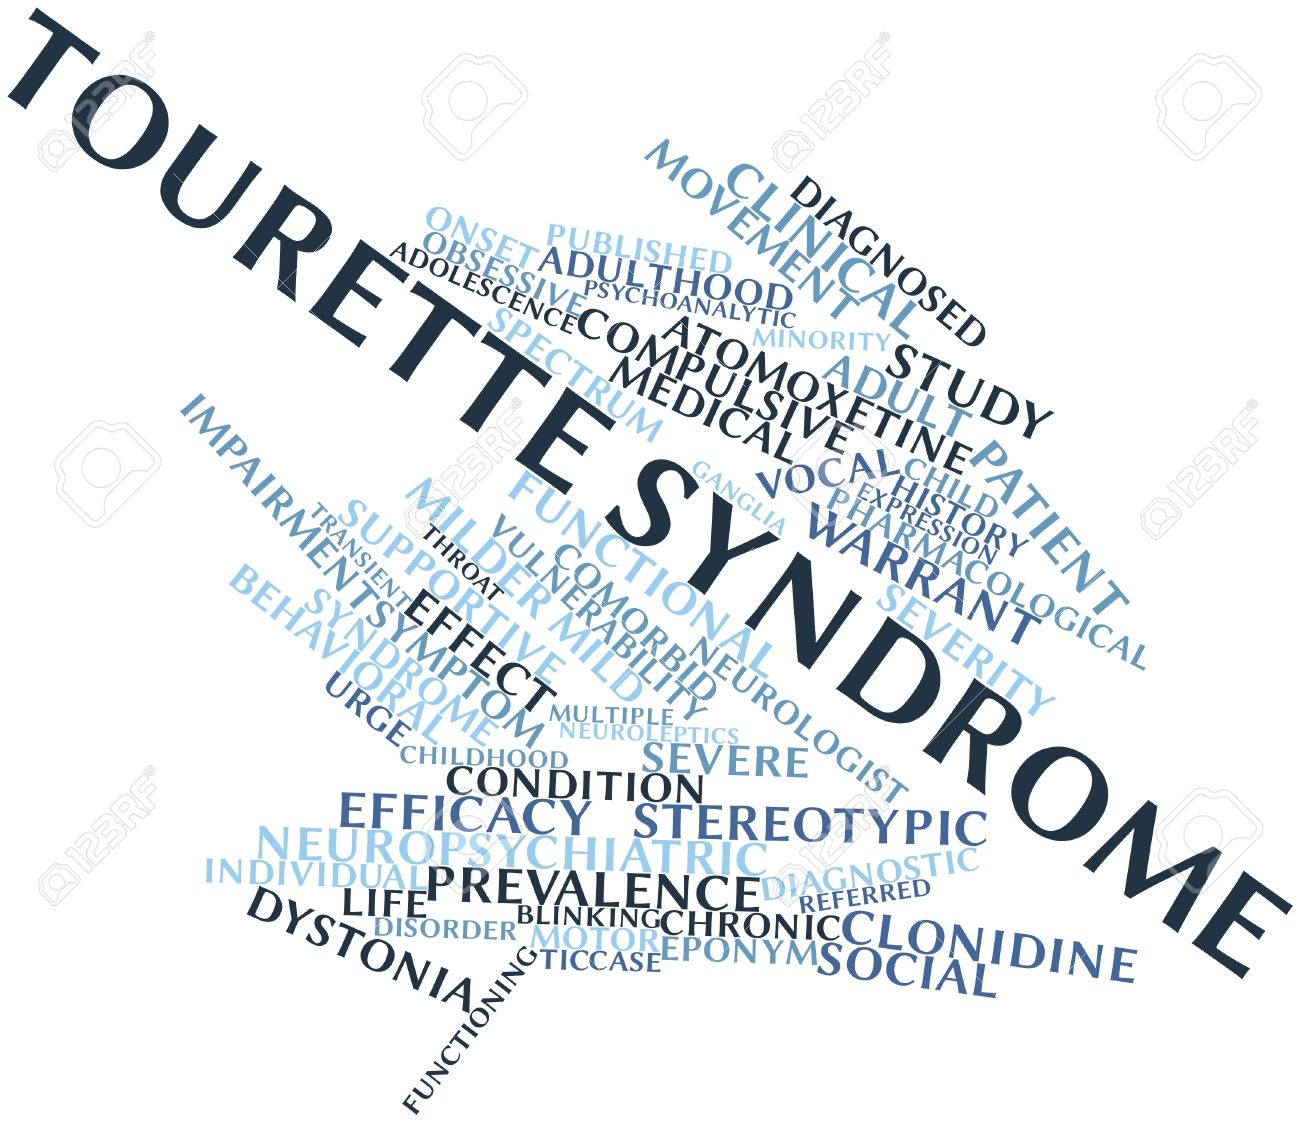 Study: Cannabinoids a Safe and Effective Treatment for Tourette syndrome